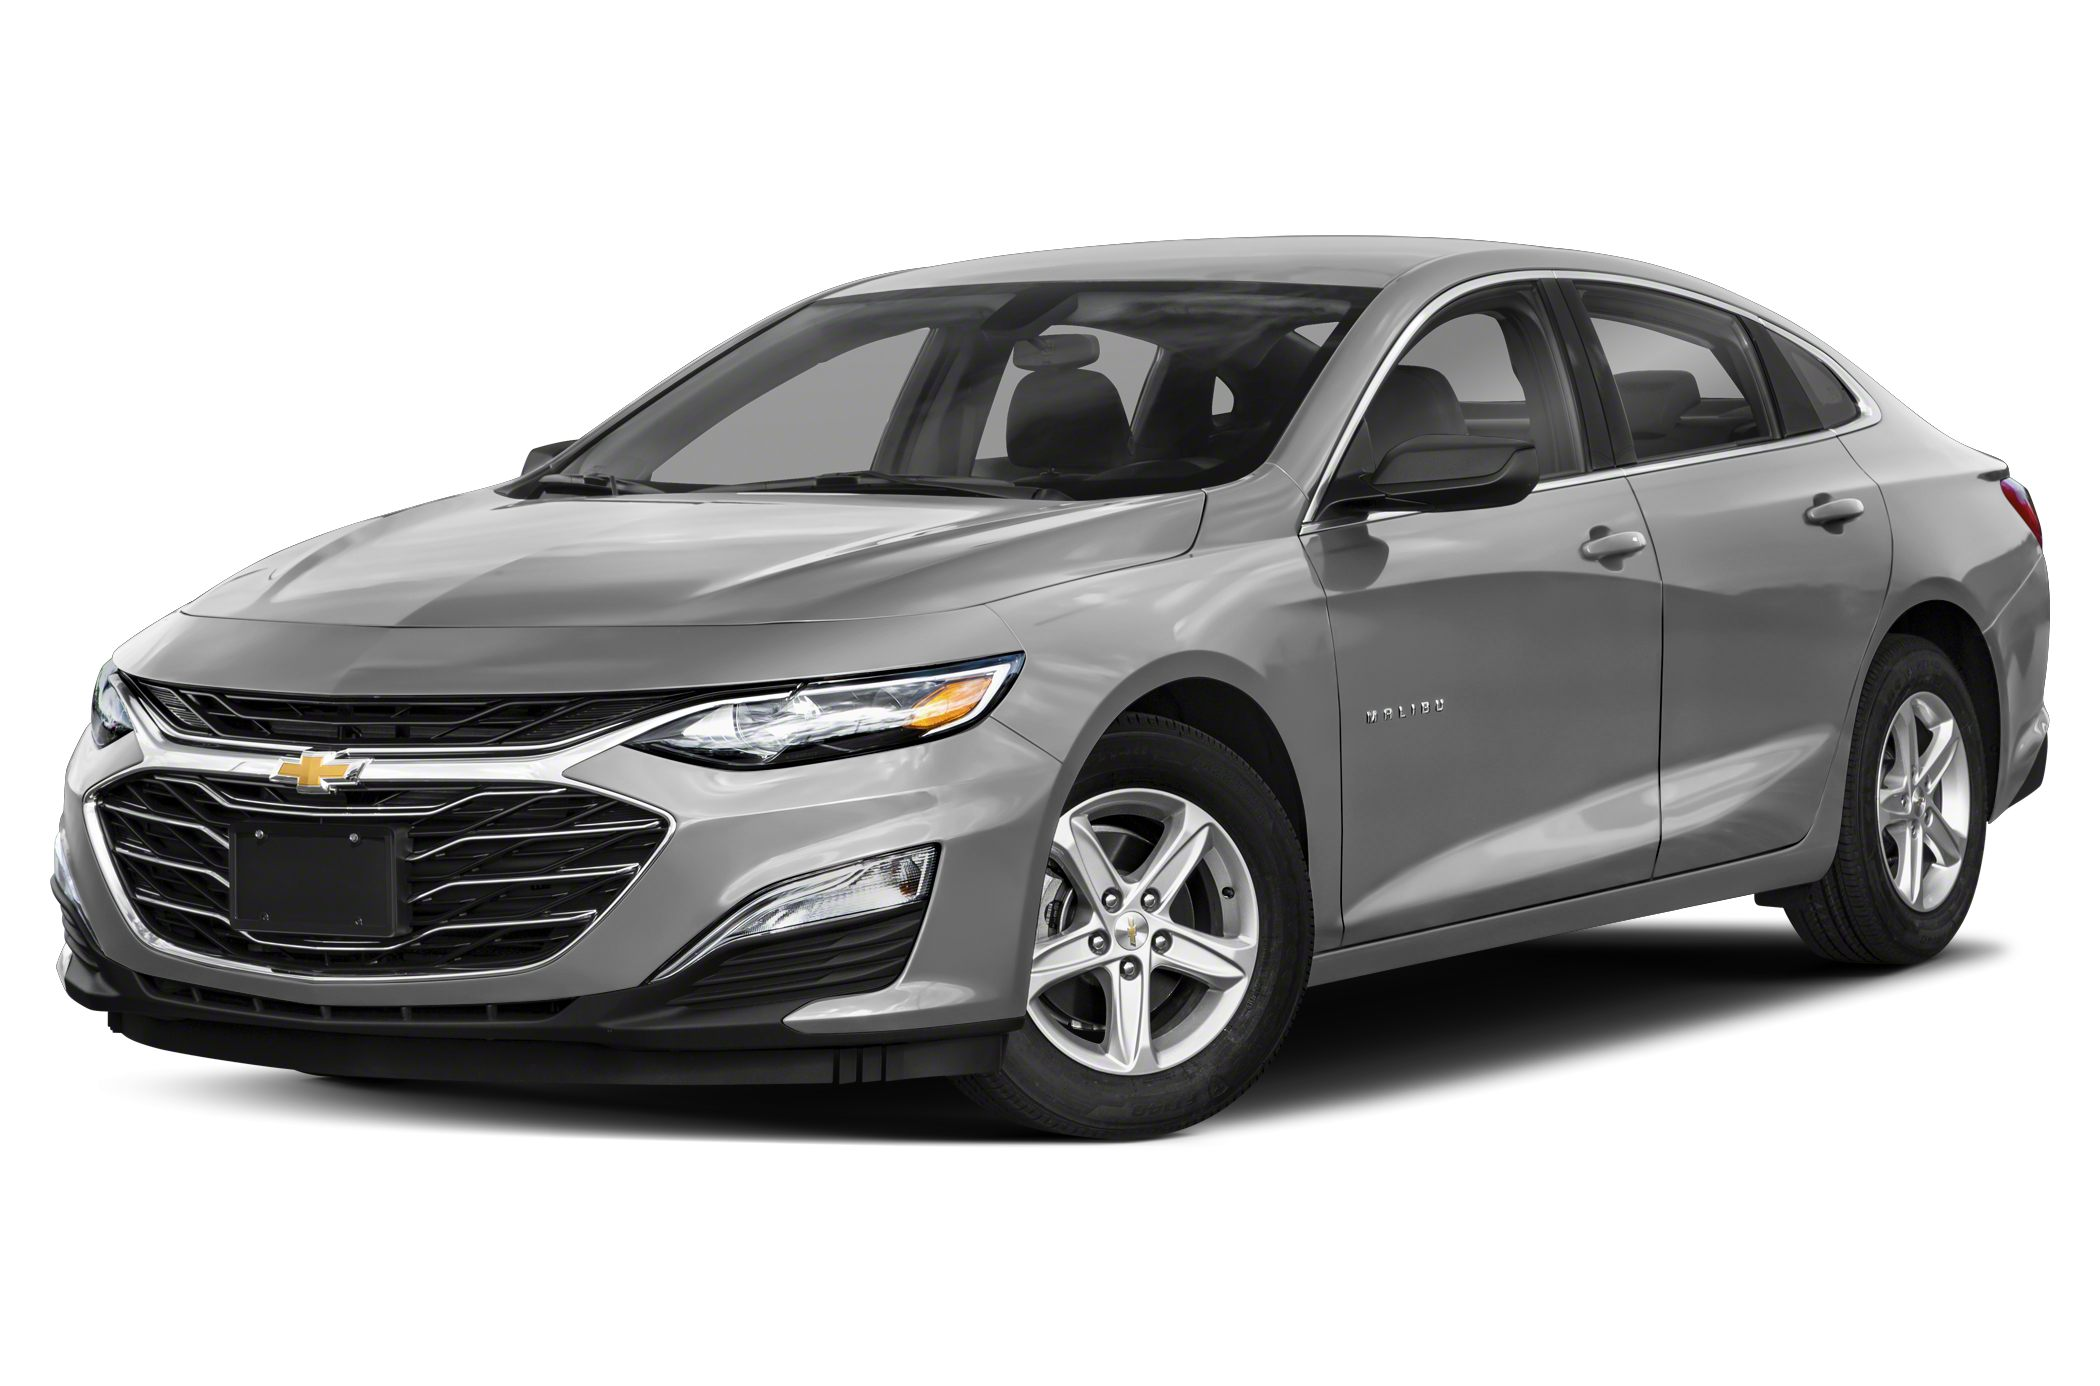 2019 Chevrolet Malibu Deals Prices Incentives Leases Overview